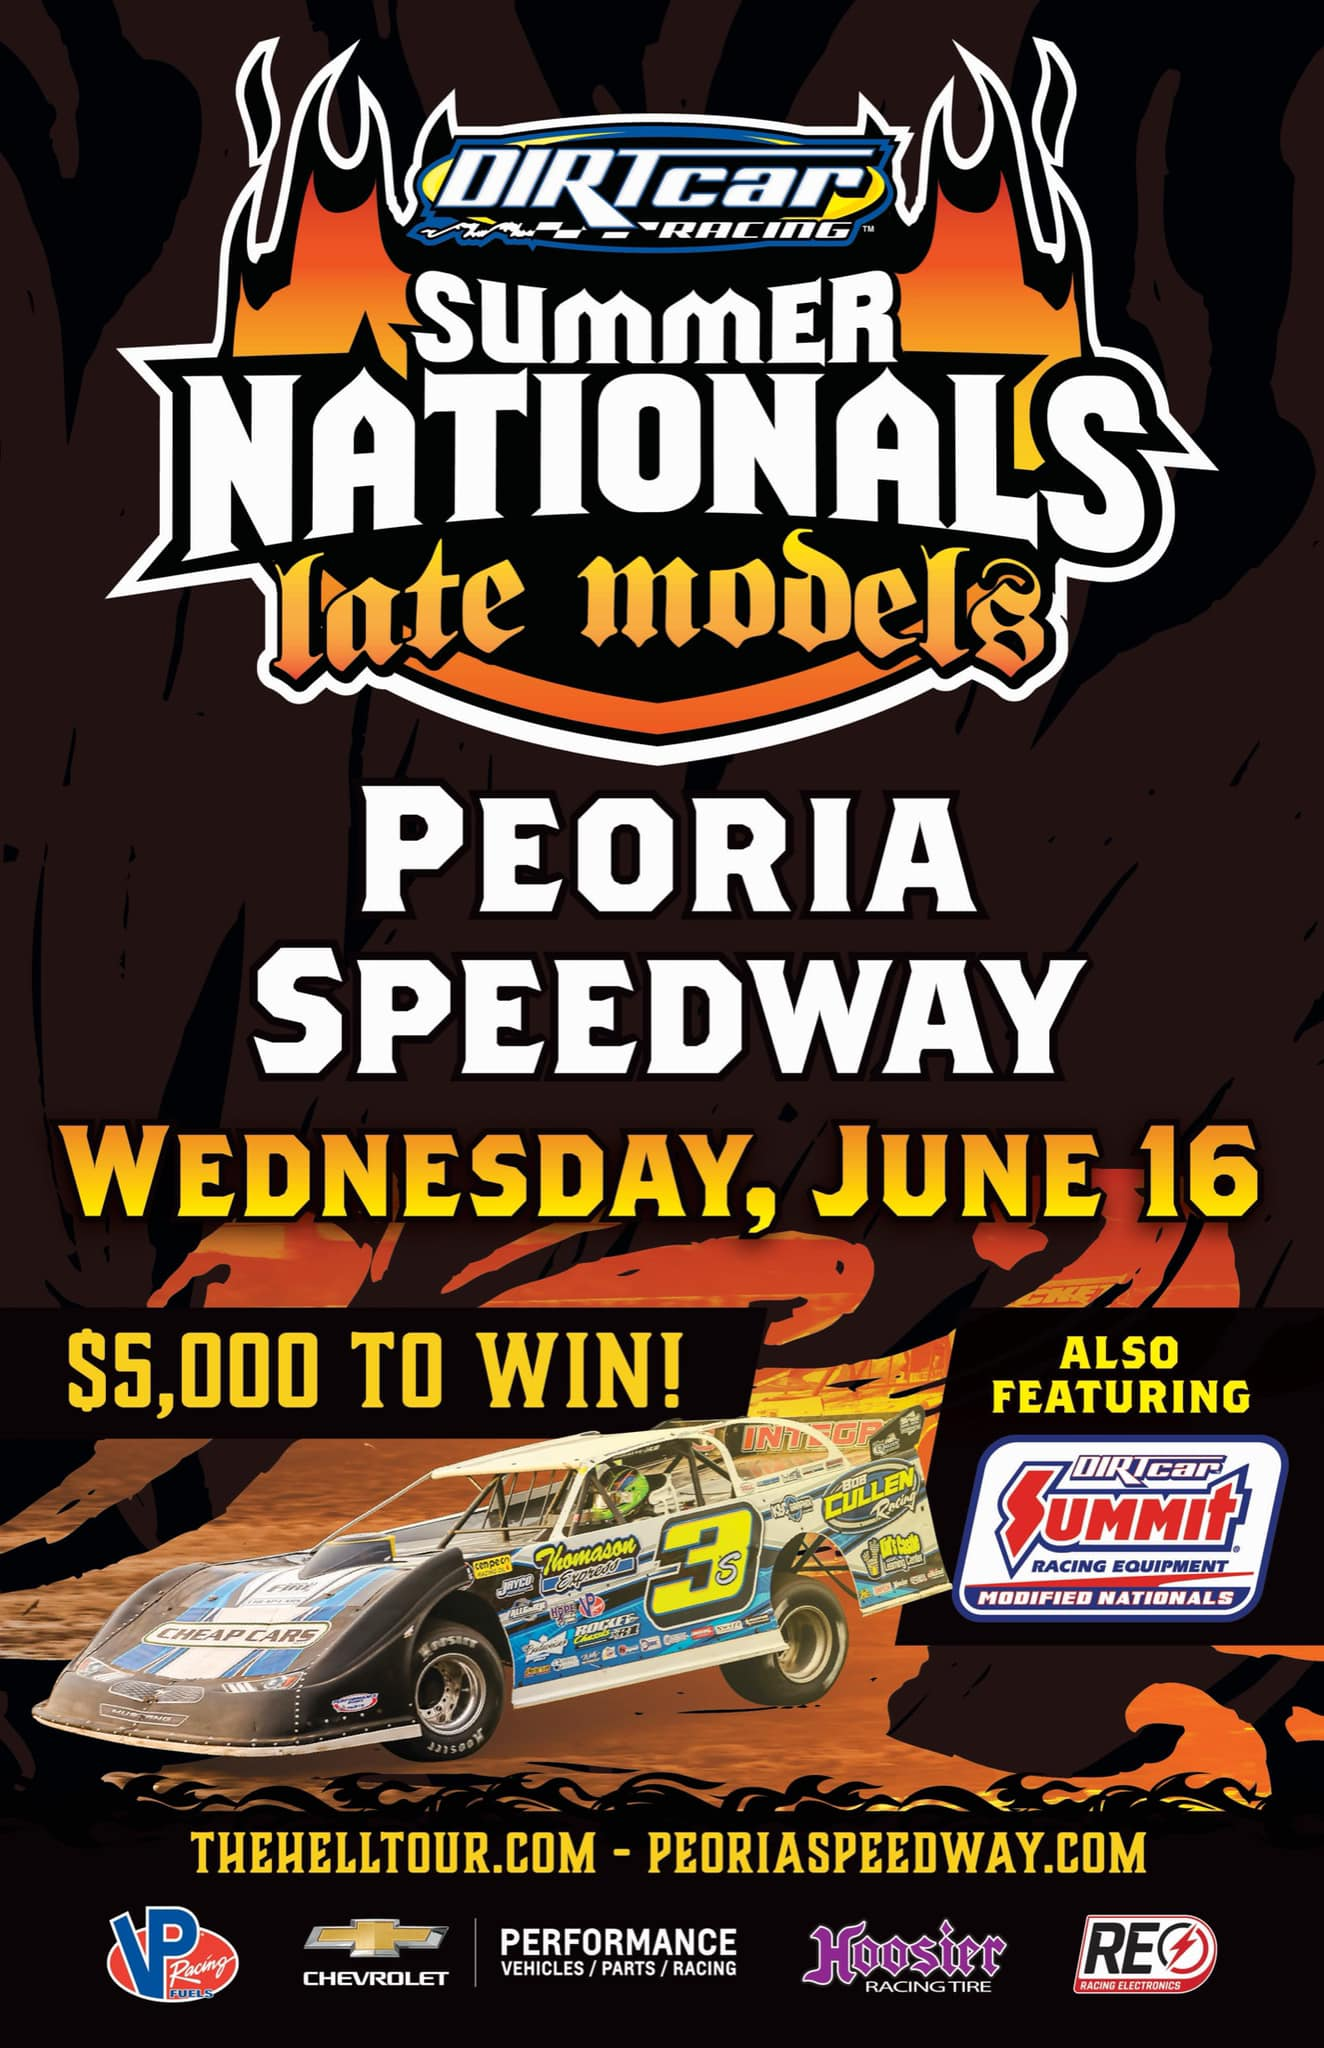 Dirt Car Racing Summer Nationals at Peoria Speedway! Wednesday, JUNE 16, 2021 post thumbnail image